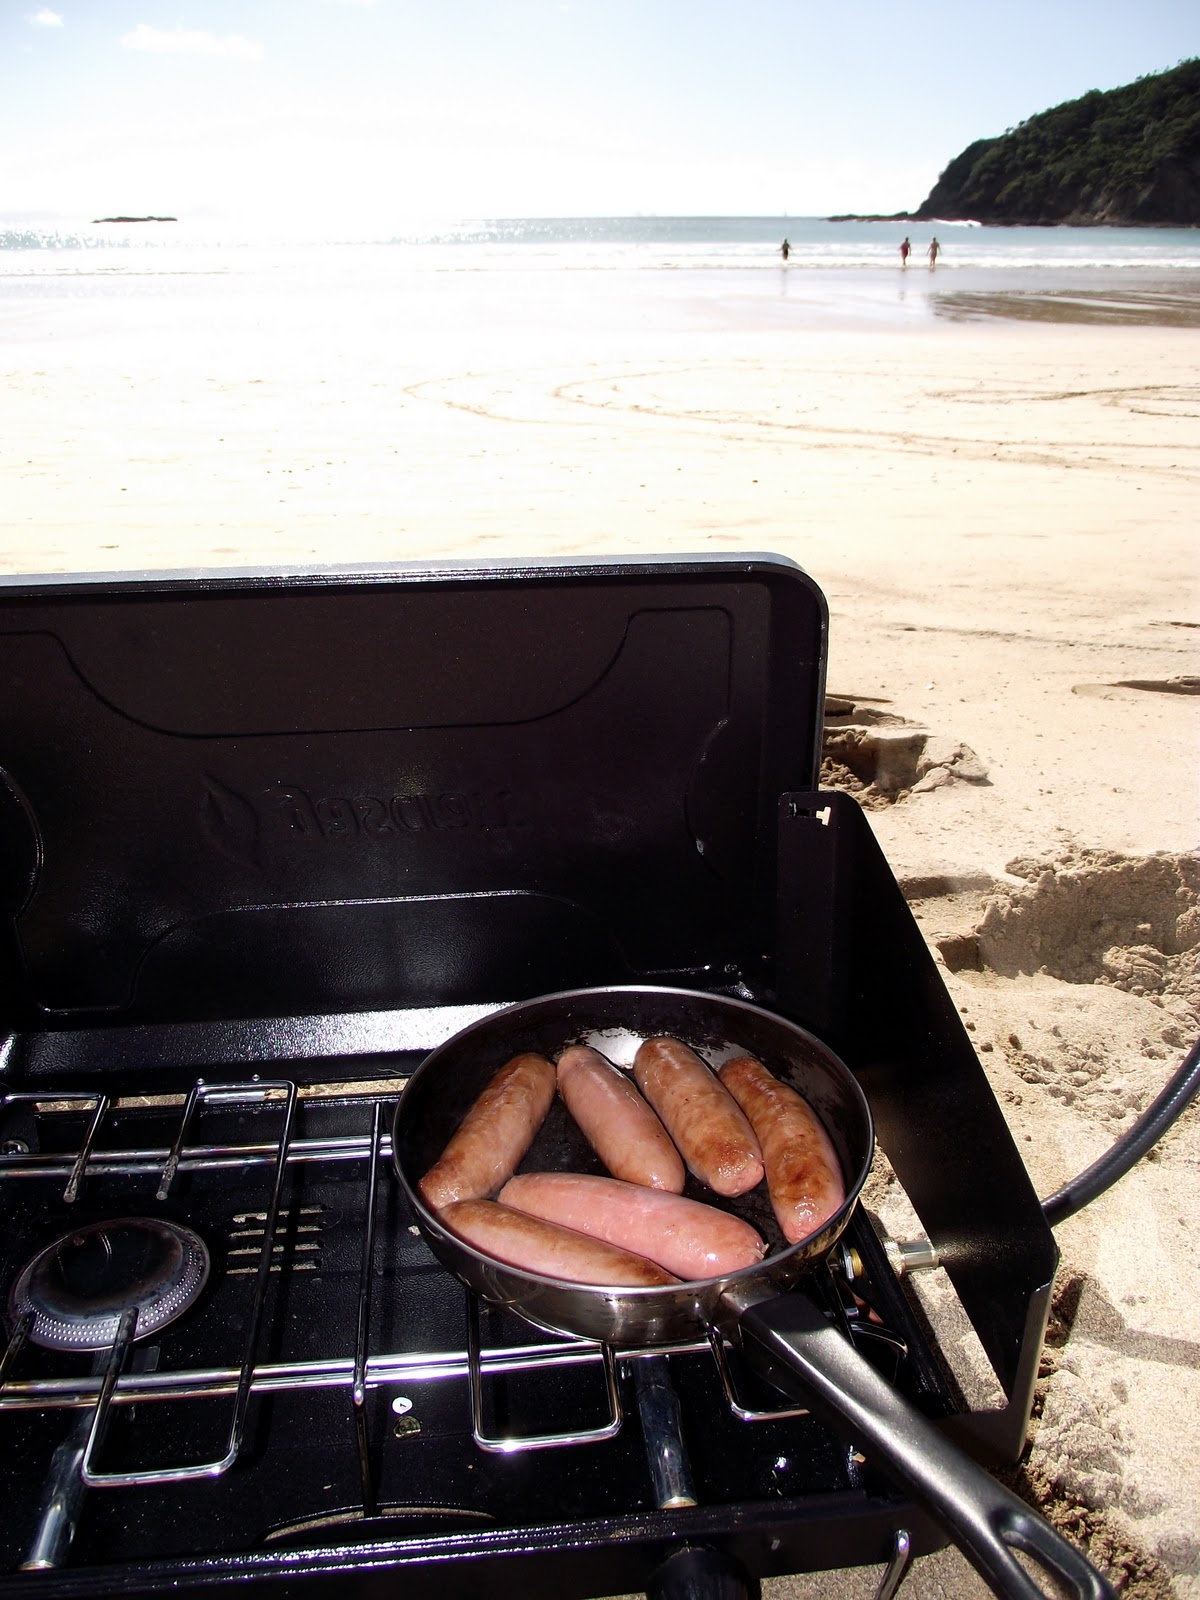 chaggie and parsons got their camping gear out frying pan stove gas cylinder and out came the sausages a sausage sandwich later and we were on the beach chaggie downunder february 2011 evening